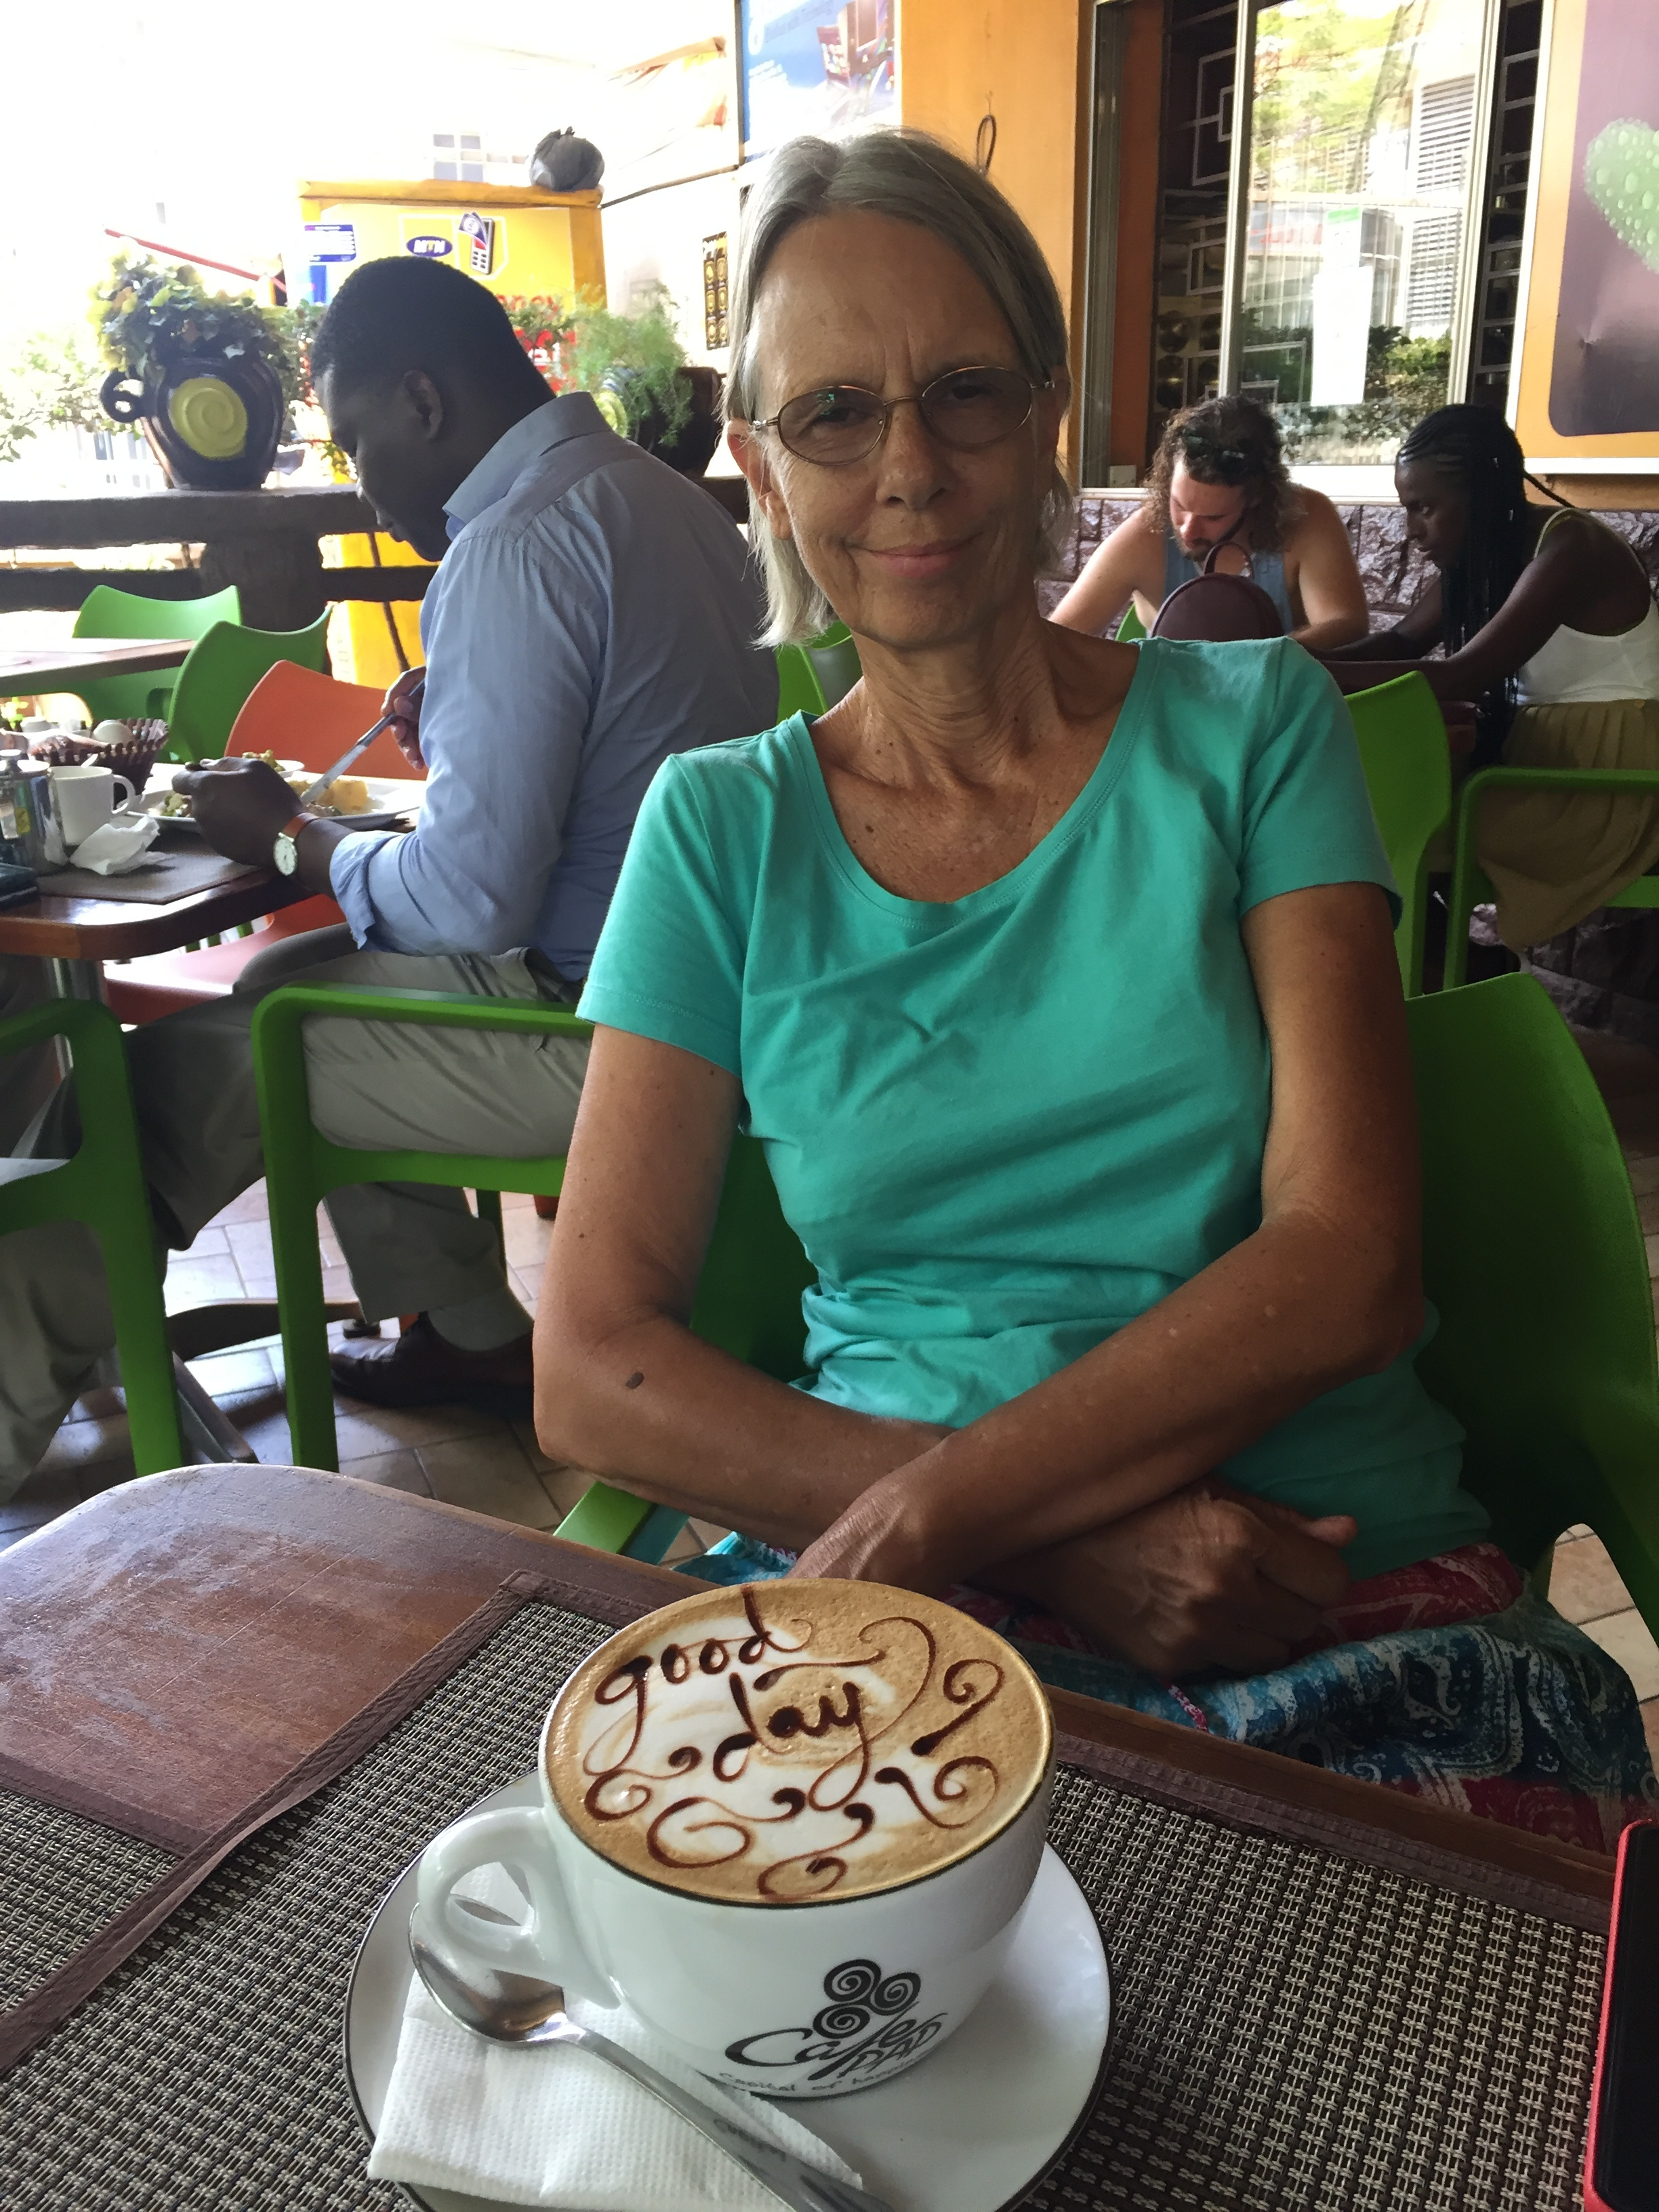 Carla will treat you to an Ugandan Latte if you visit her- best cappachinos you will ever drink!  Or maybe you prefer Chia tea?